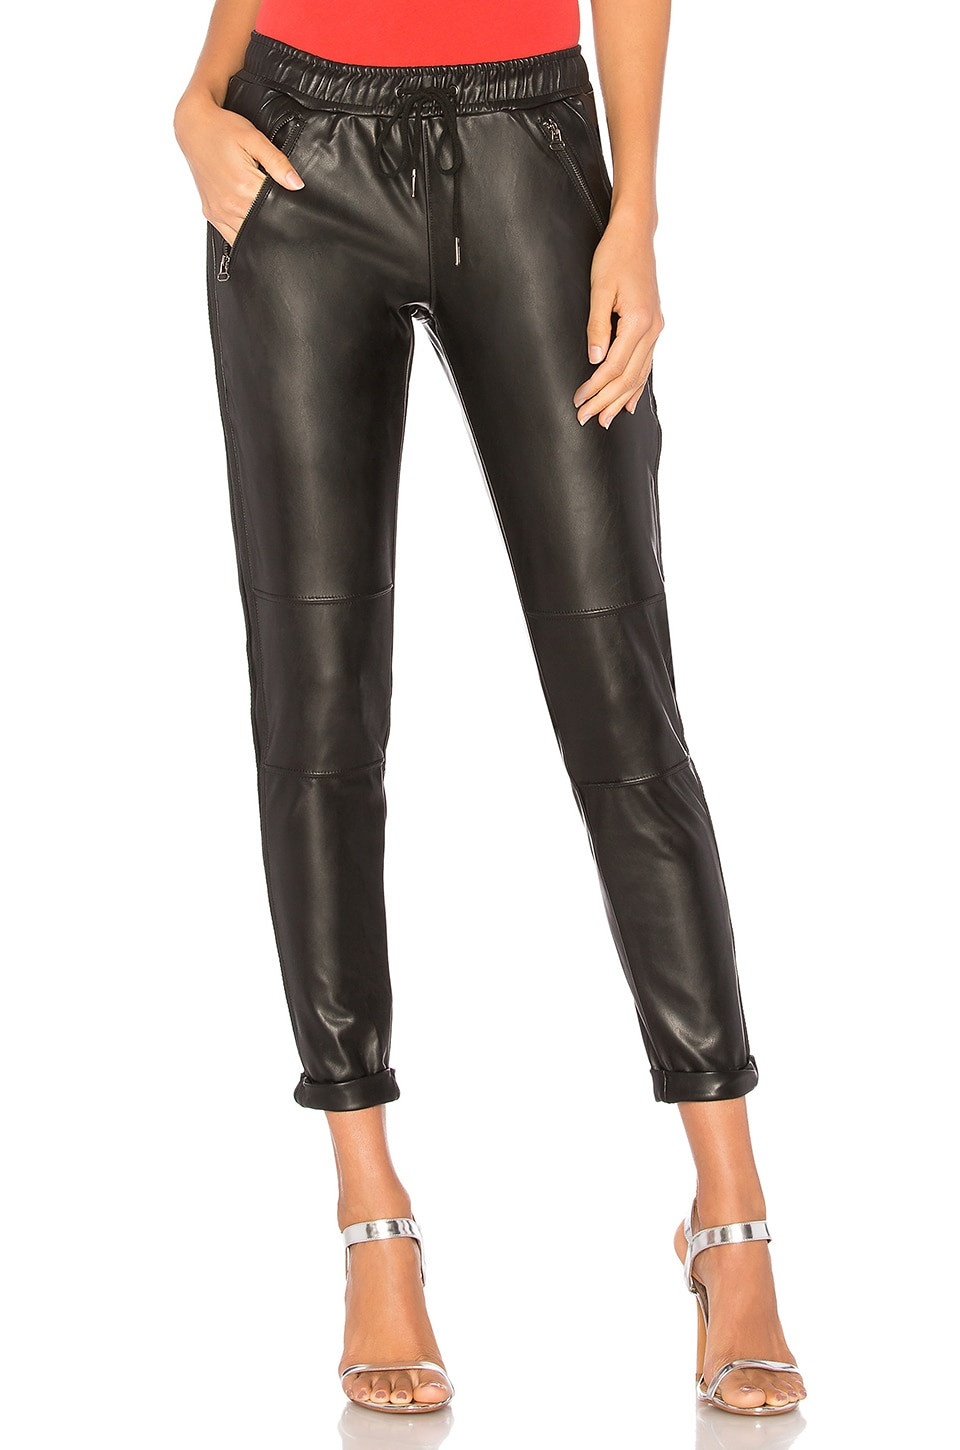 David Lerner Track Pant in Classic Black